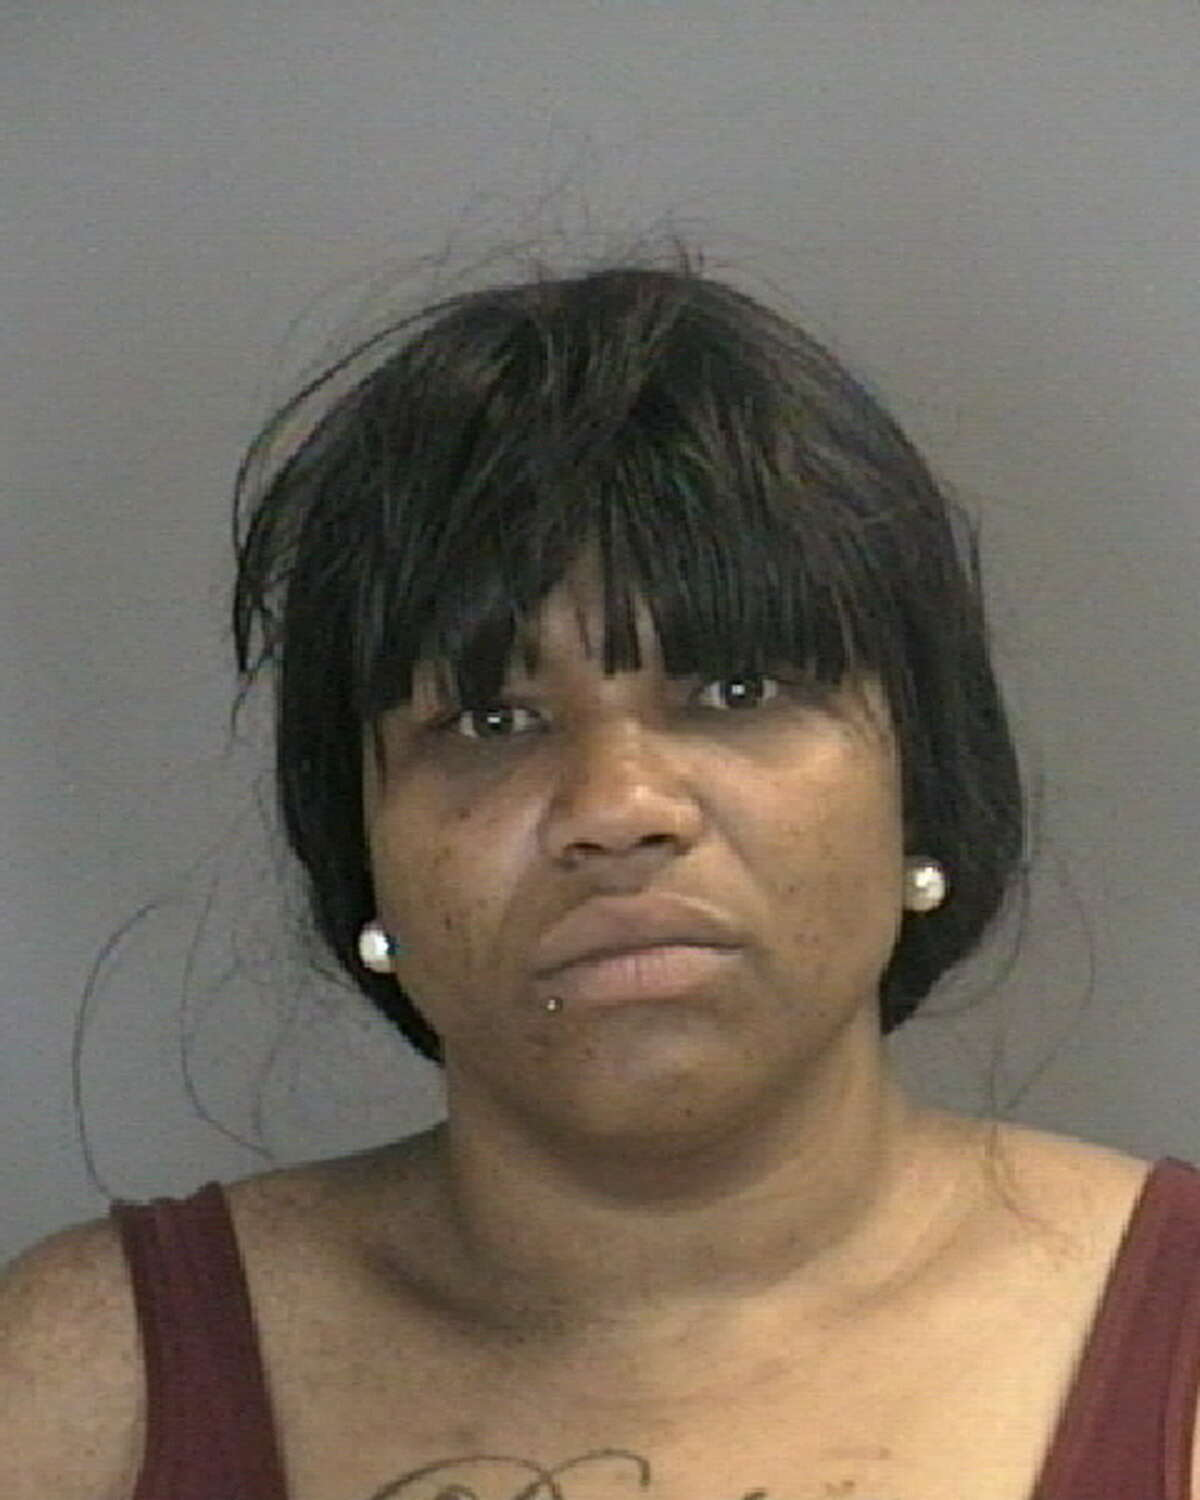 Destiny S. Pettaway was charged with assault in the stabbing and slashing of her boyfriend on Central Avenue June 3, 2020.